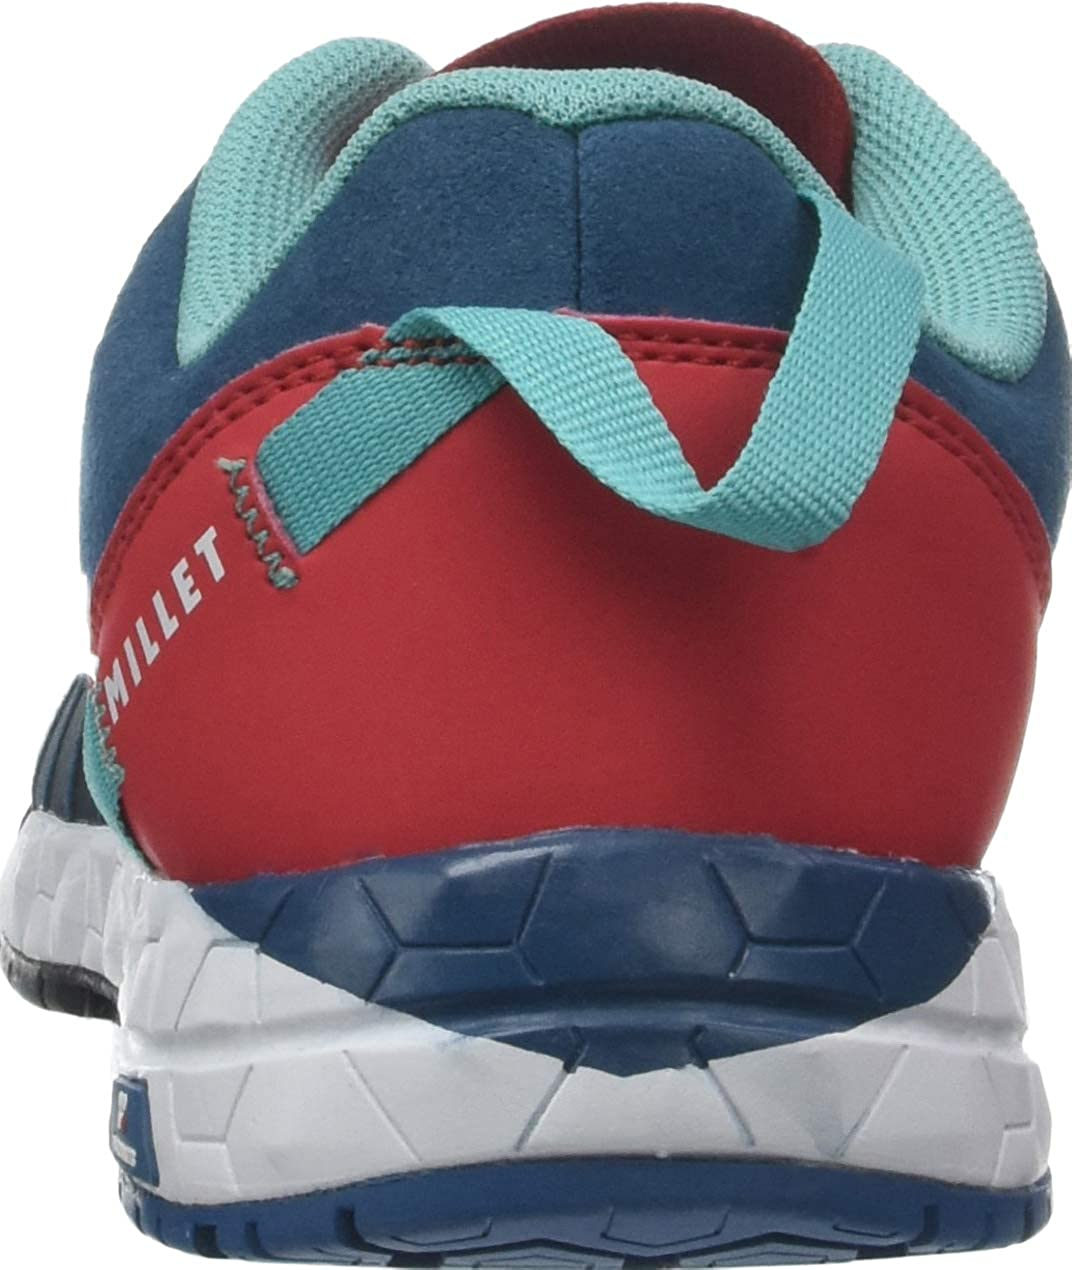 MILLET Mens Low Rise Hiking Climbing Shoes